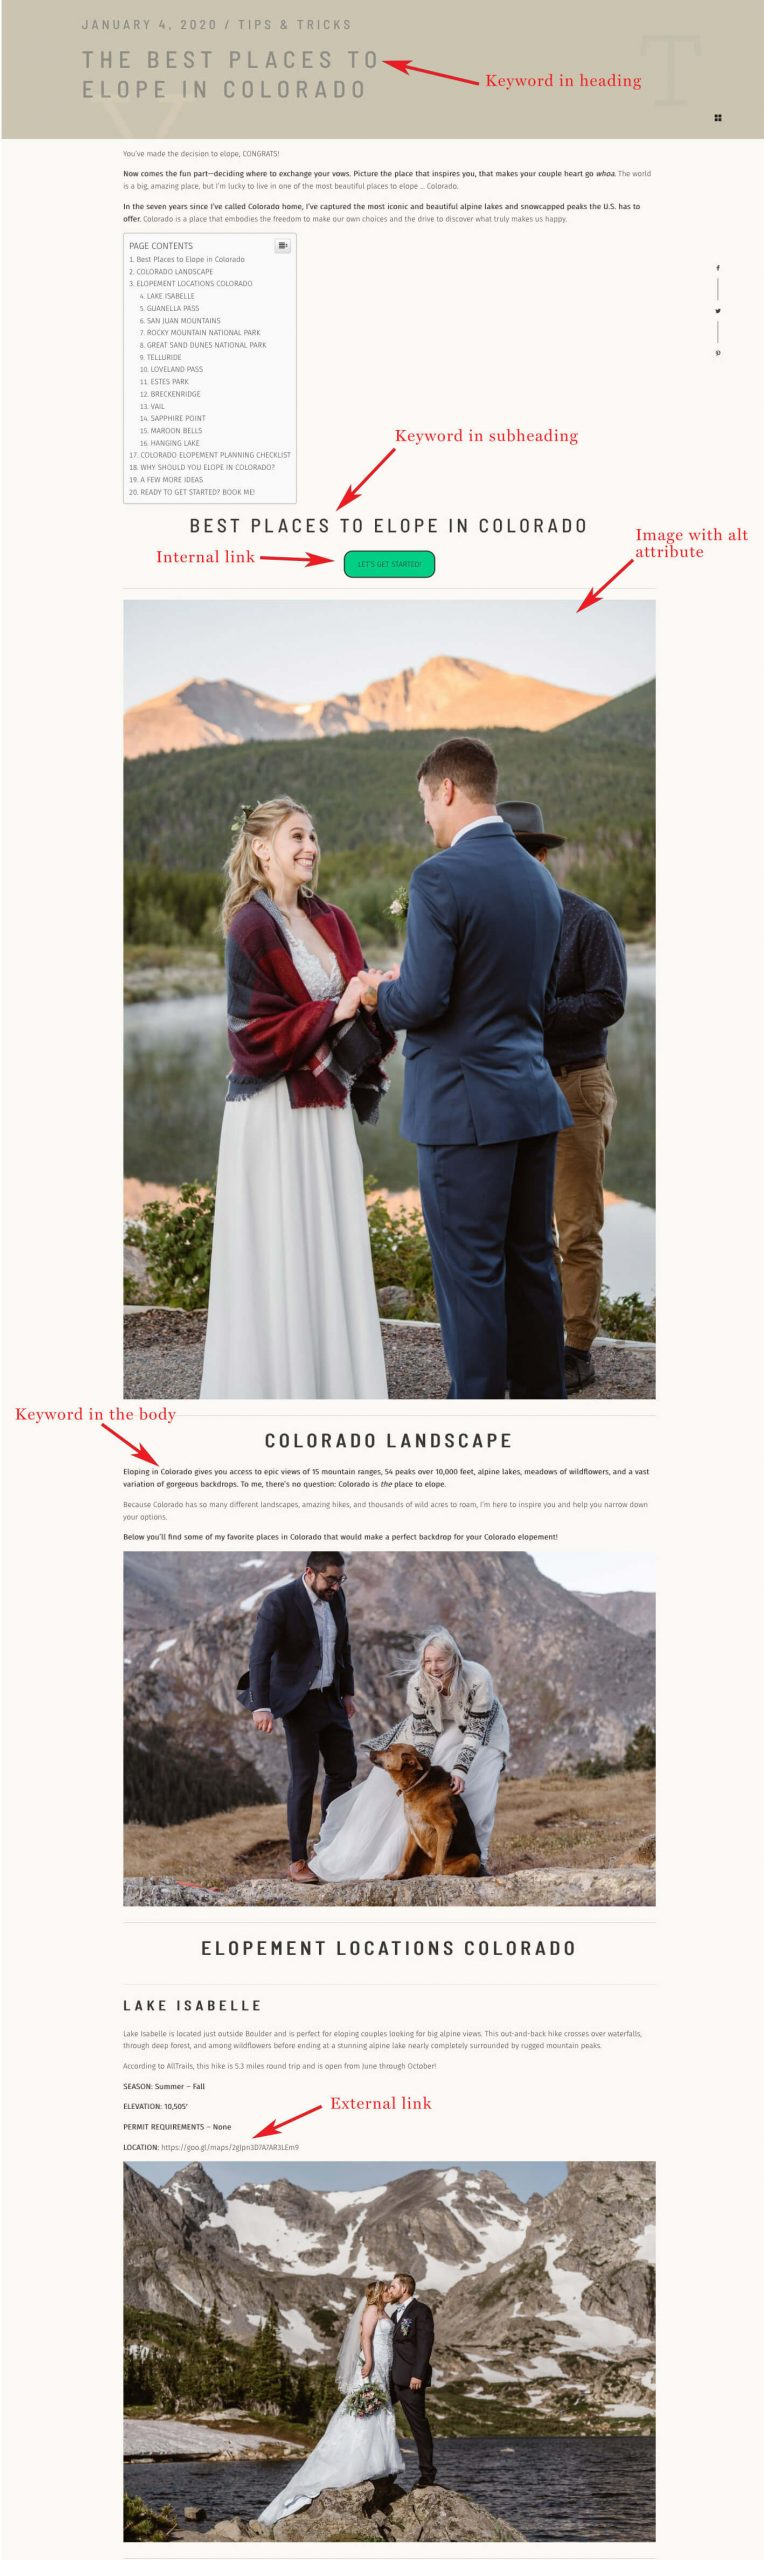 full-page-elope-in-colorado-marked